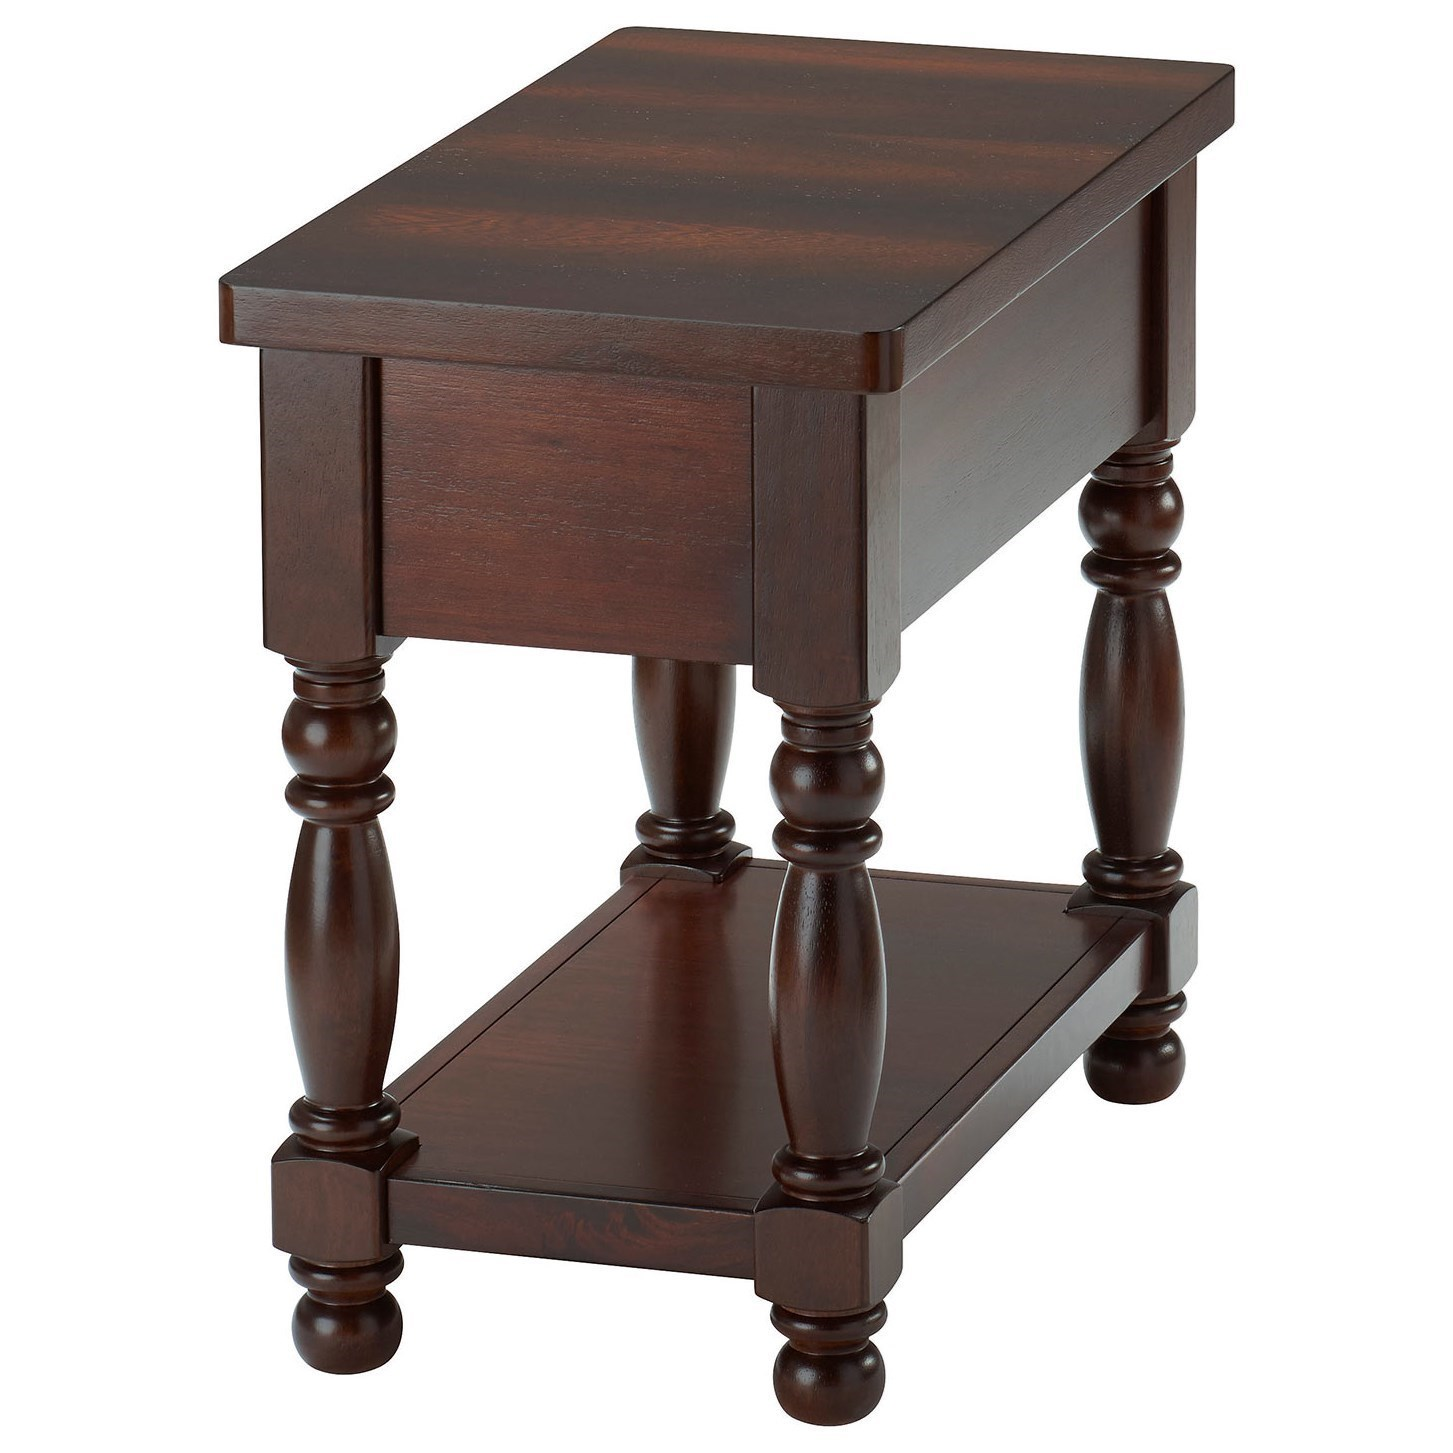 chair side tables with storage rubber band target winners only hamilton park 15 table shelf lindy s